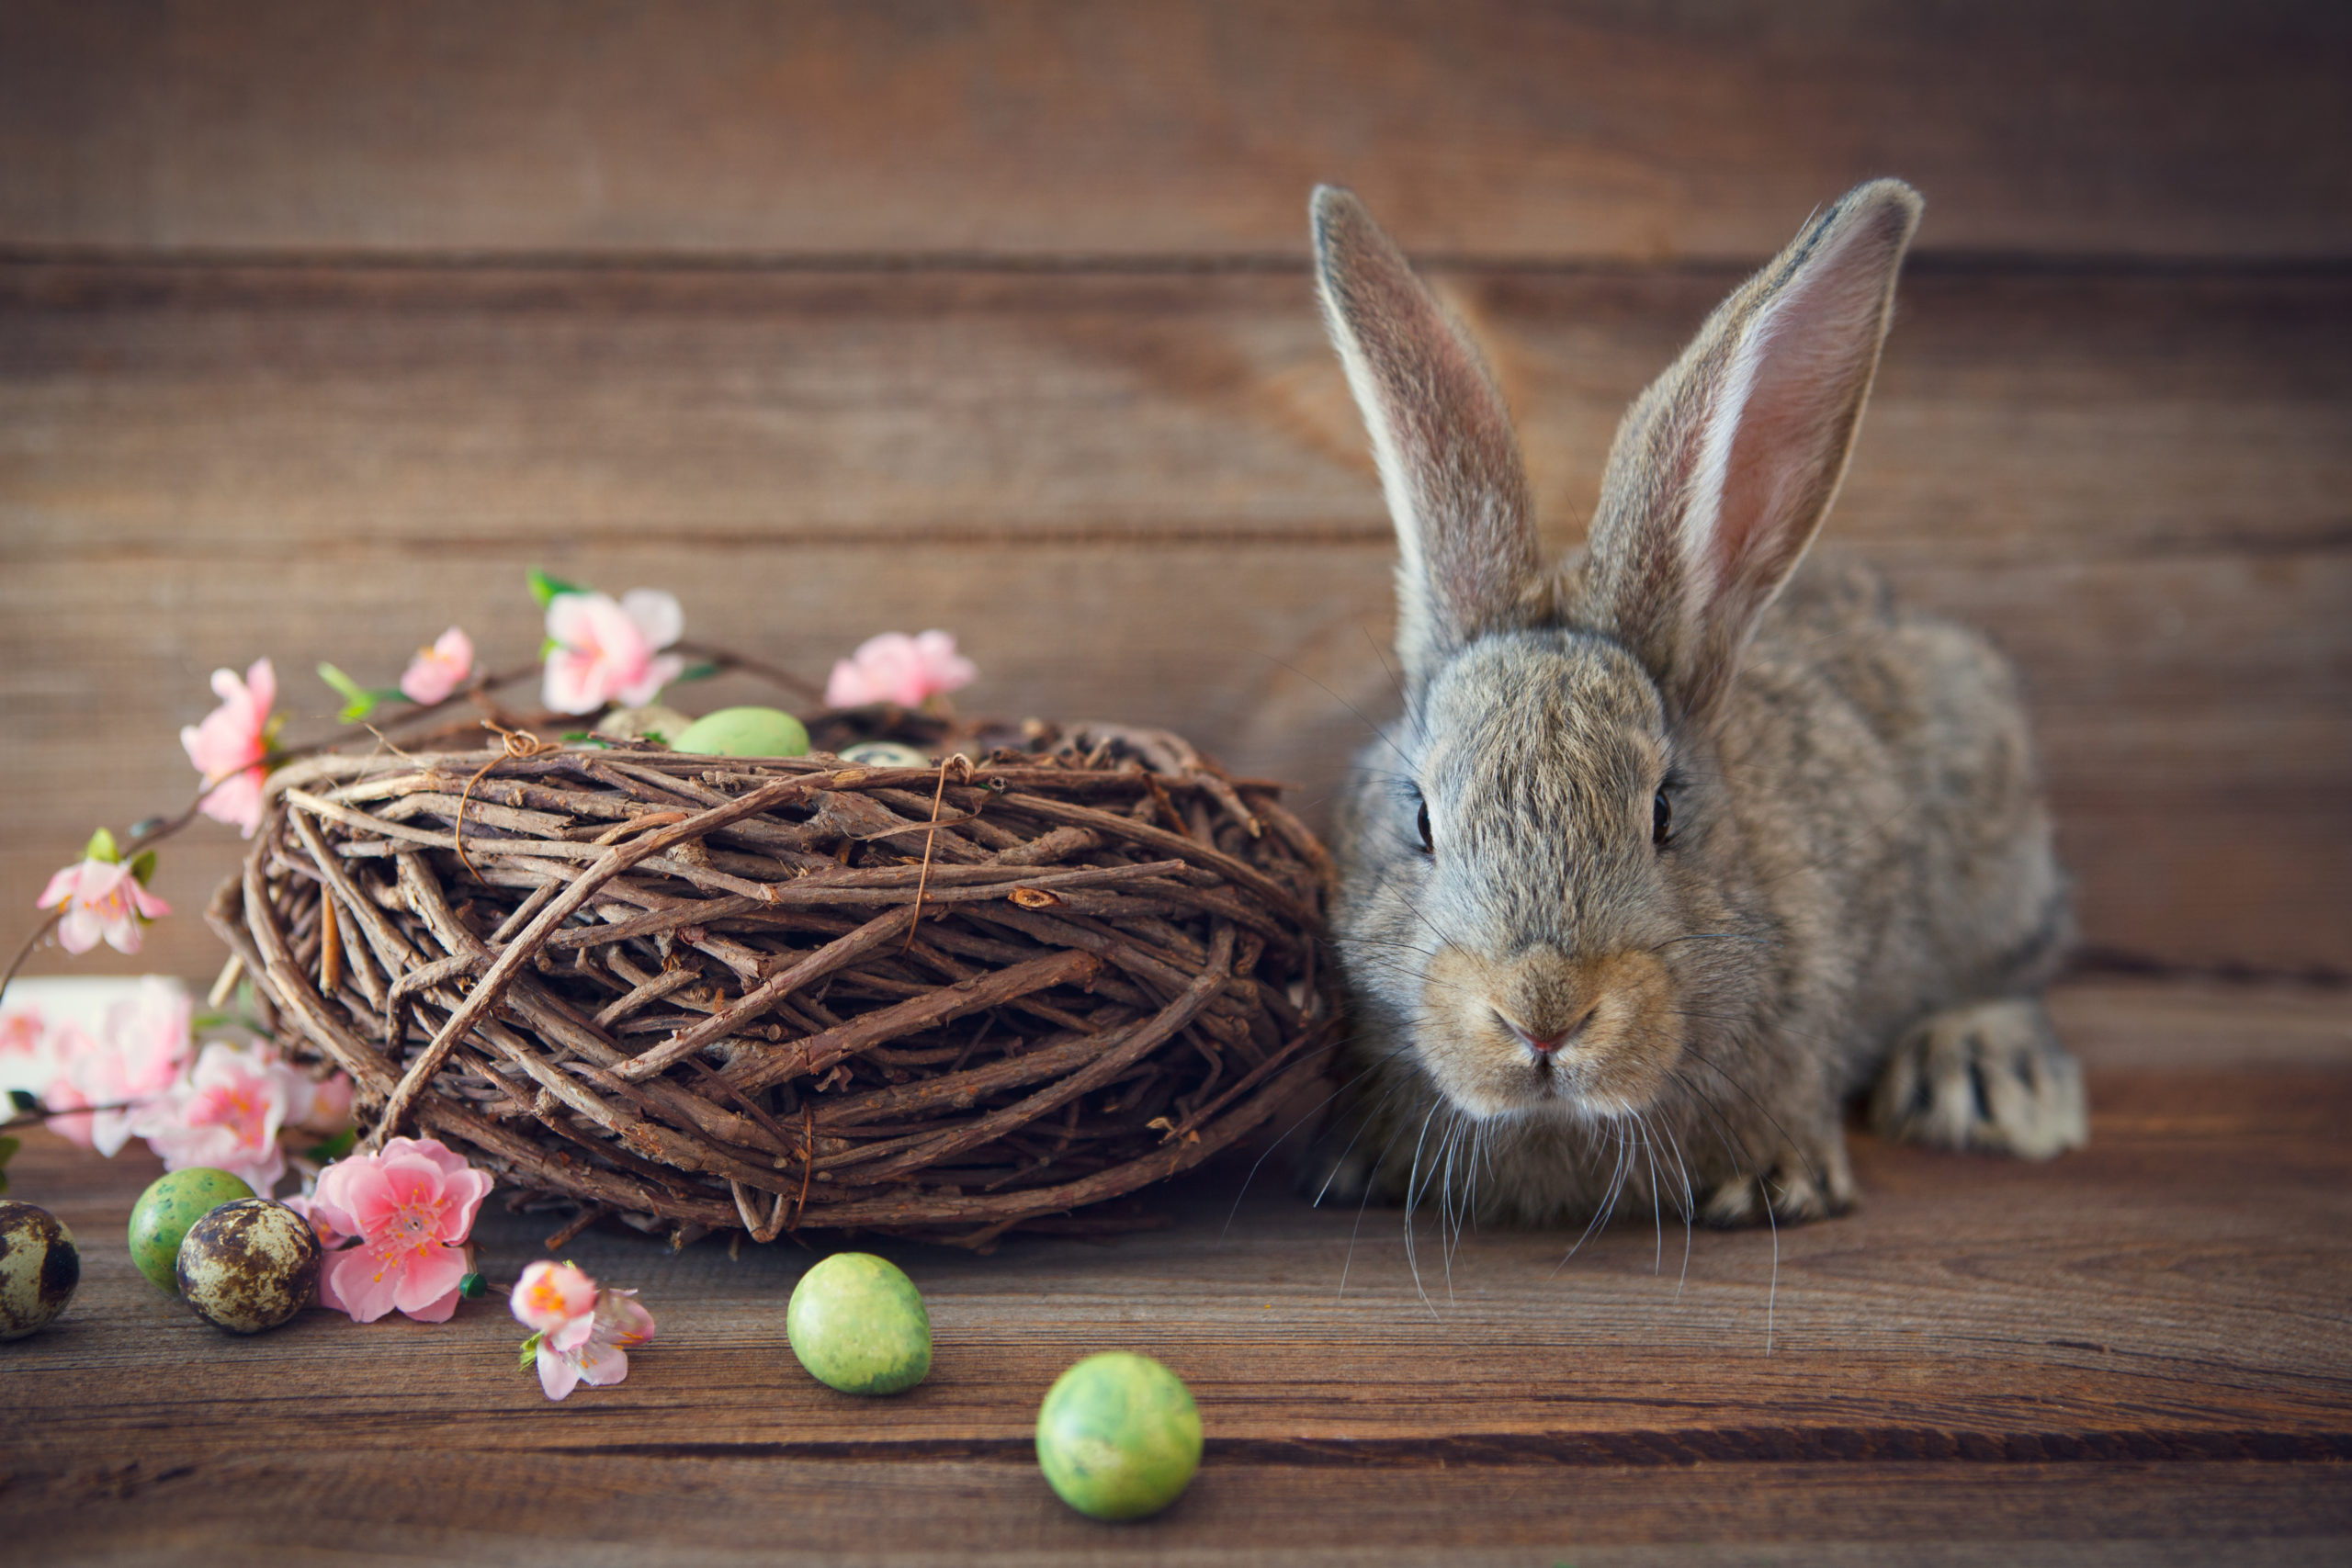 Easter: A Celebration of Vulnerability